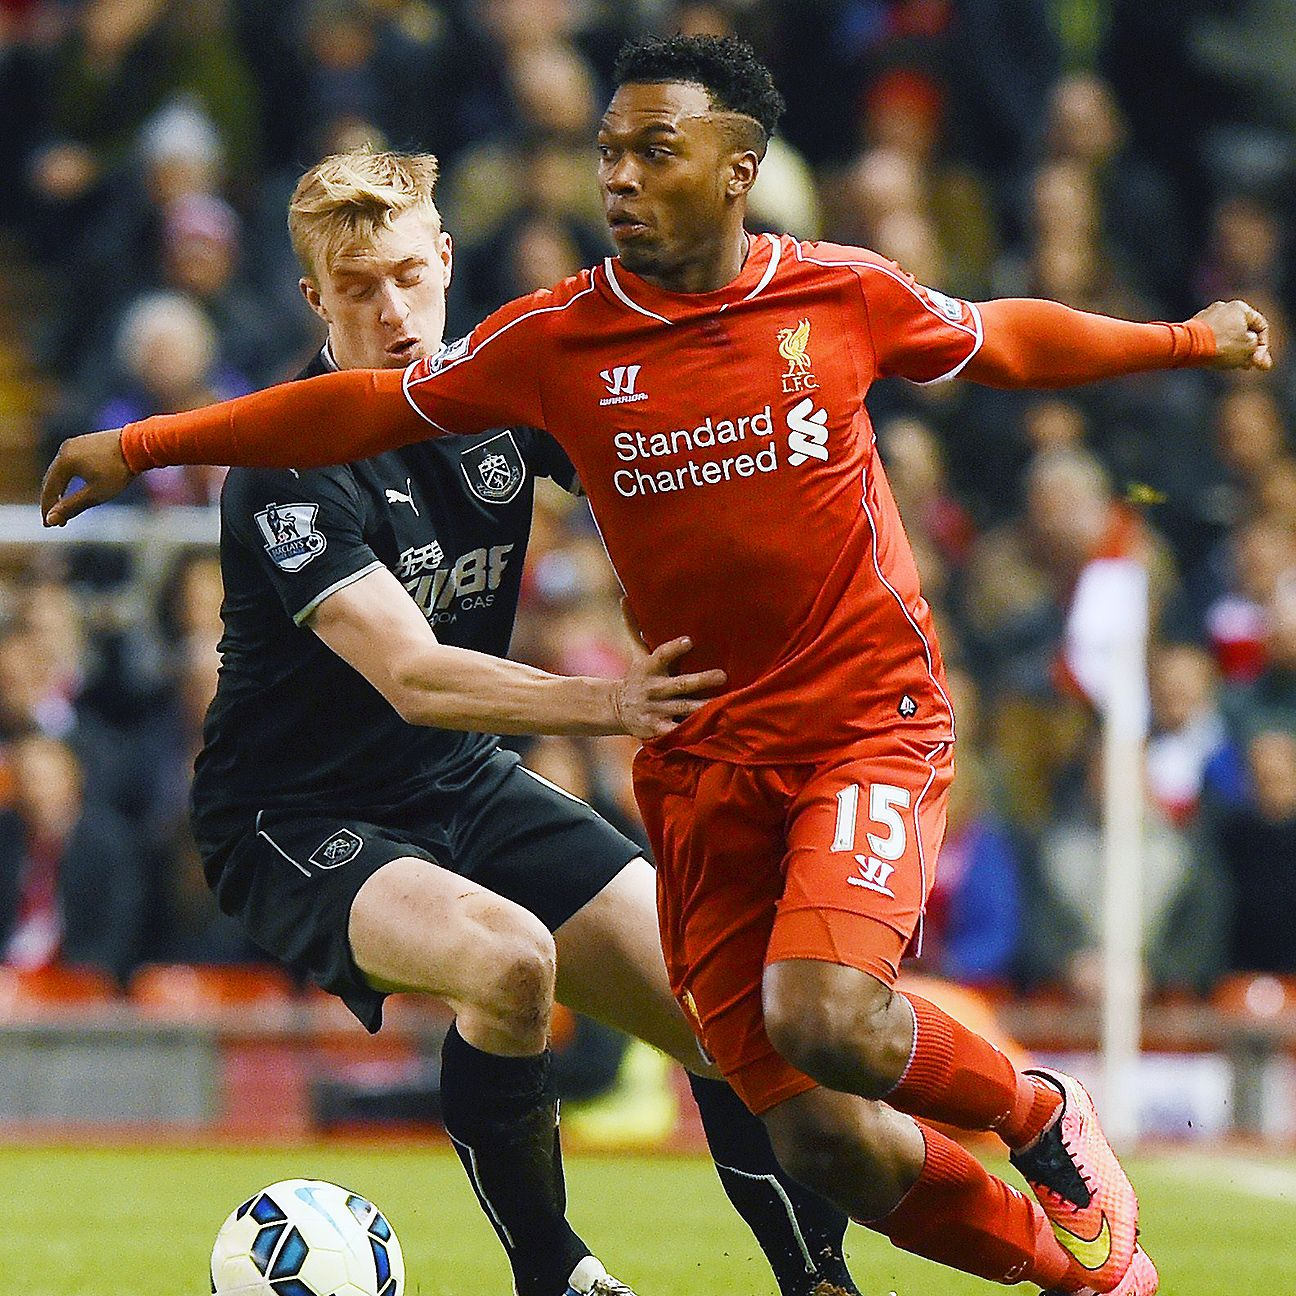 Ben Mee and Burnley seemed a step behind Liverpool all evening on Wednesday.